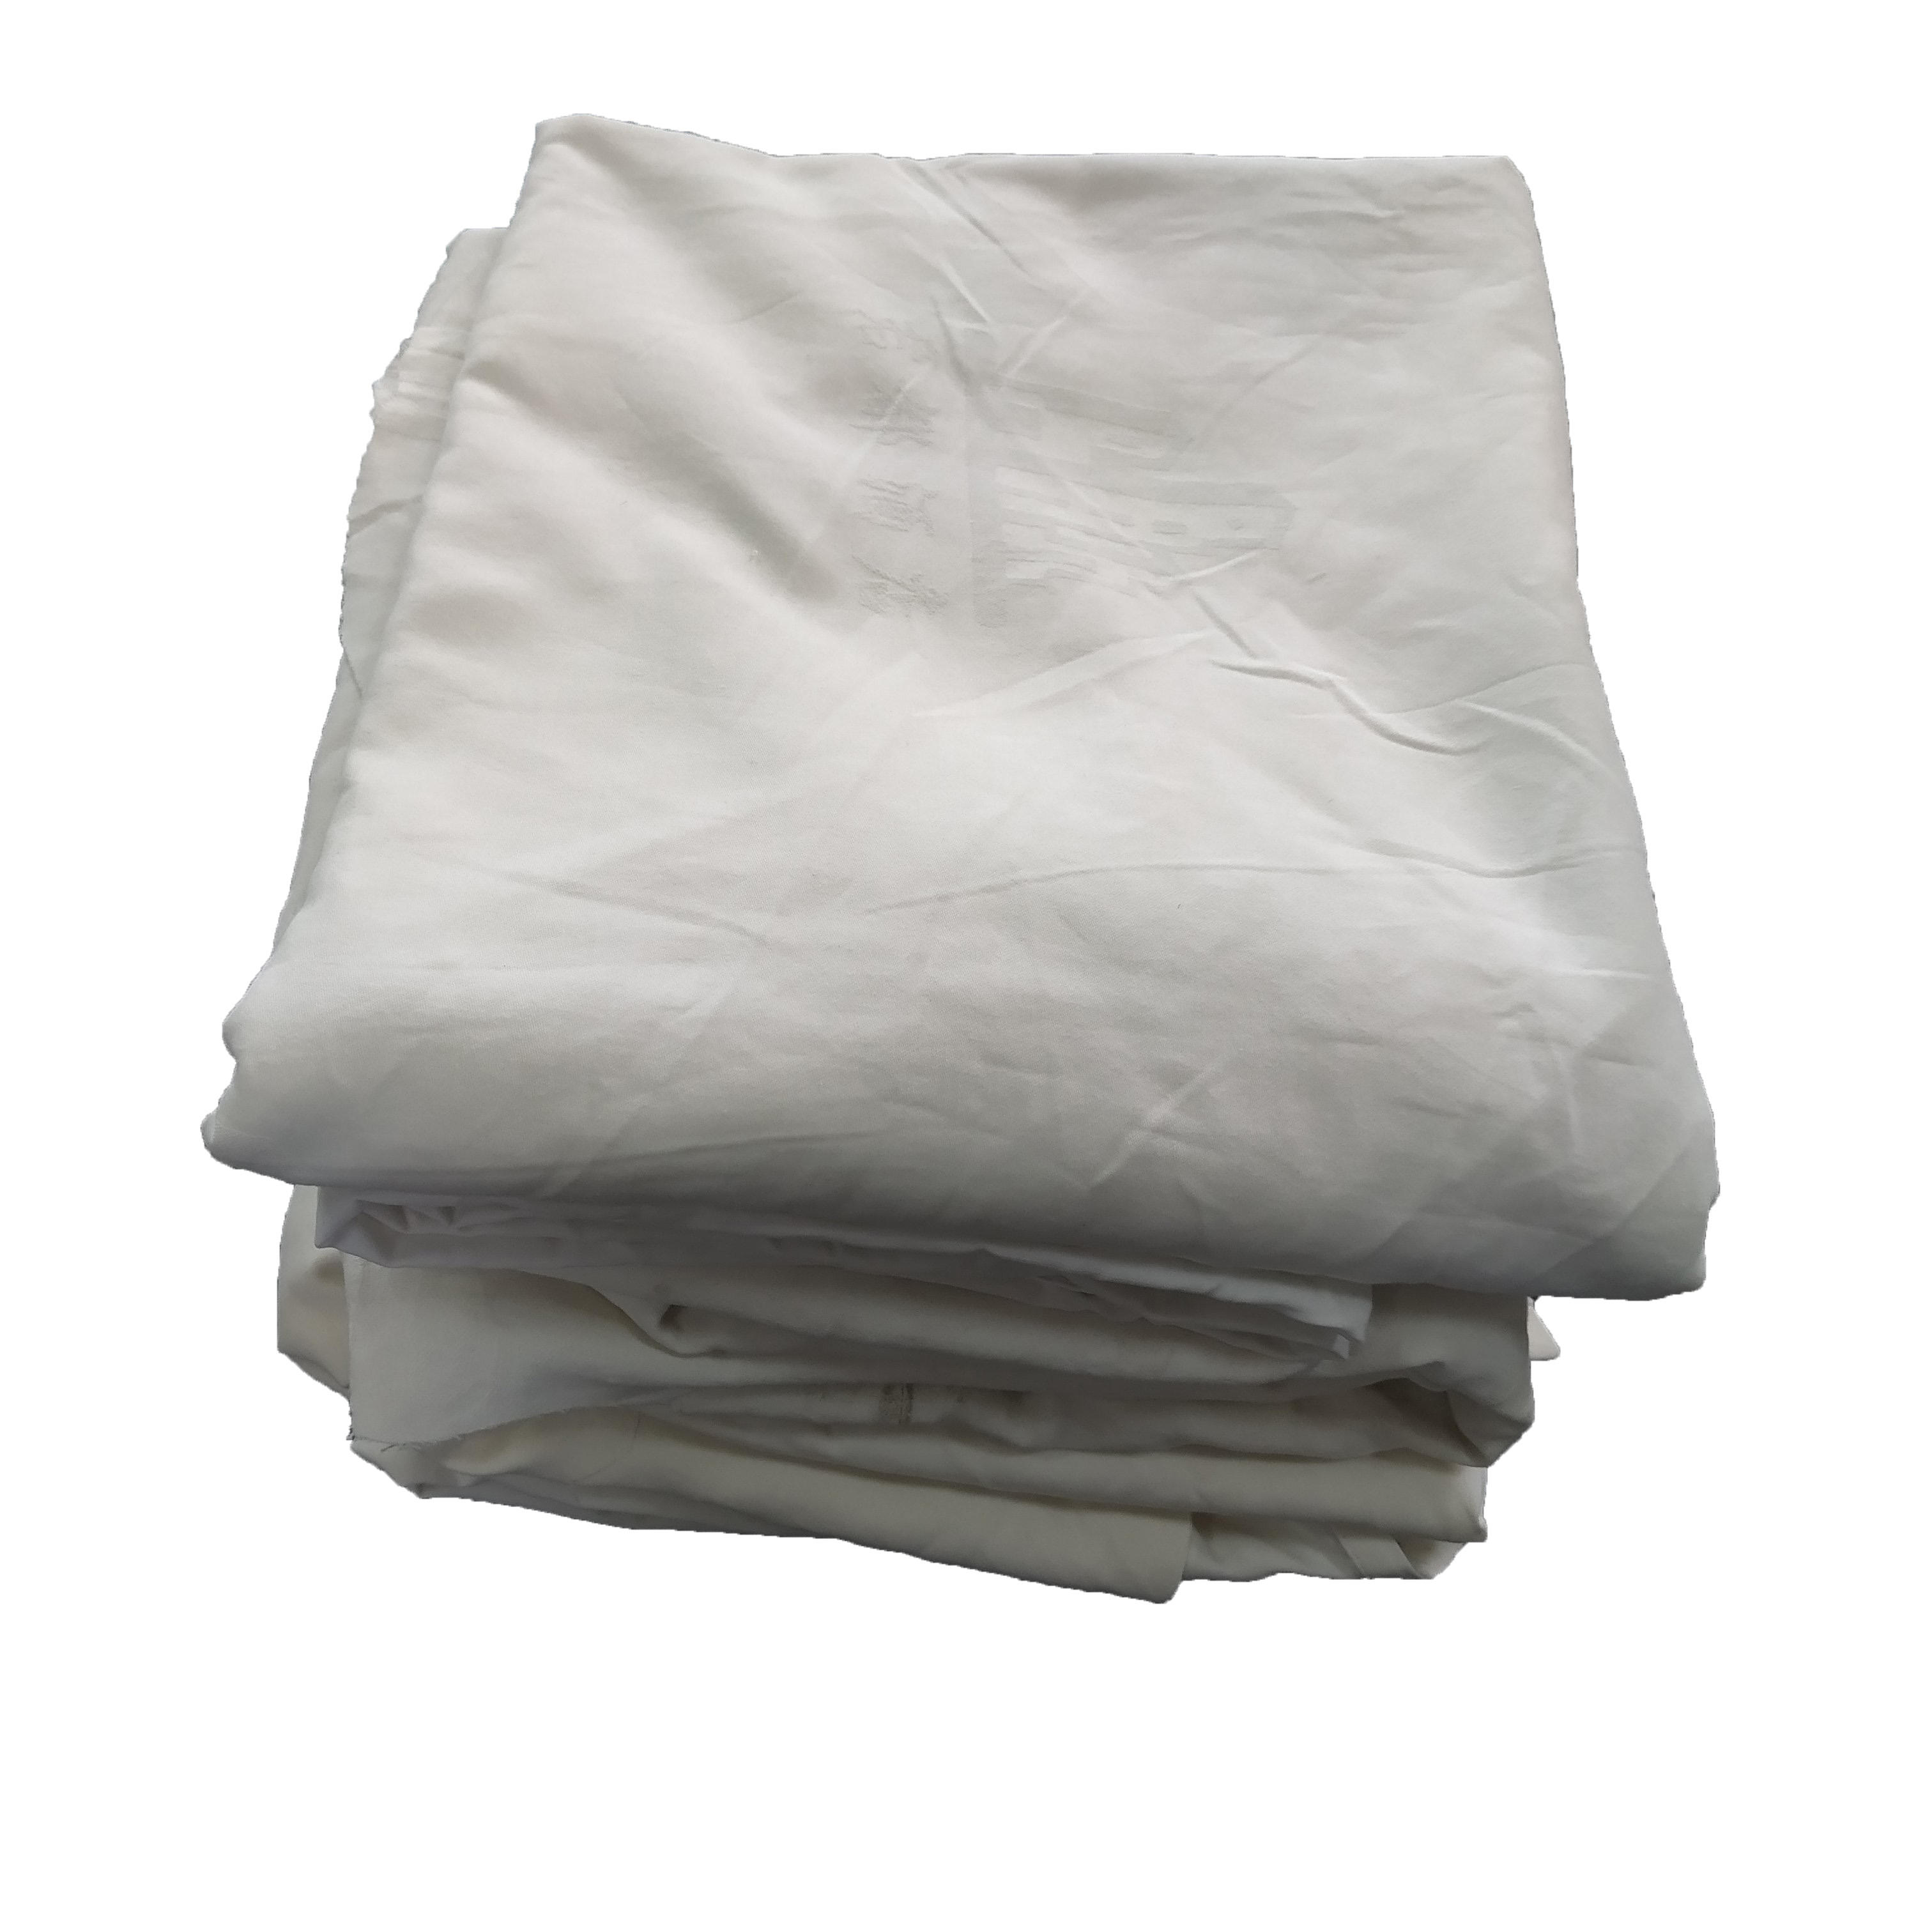 White cotton bed sheet cloth cleaning cloth rags with high effciency